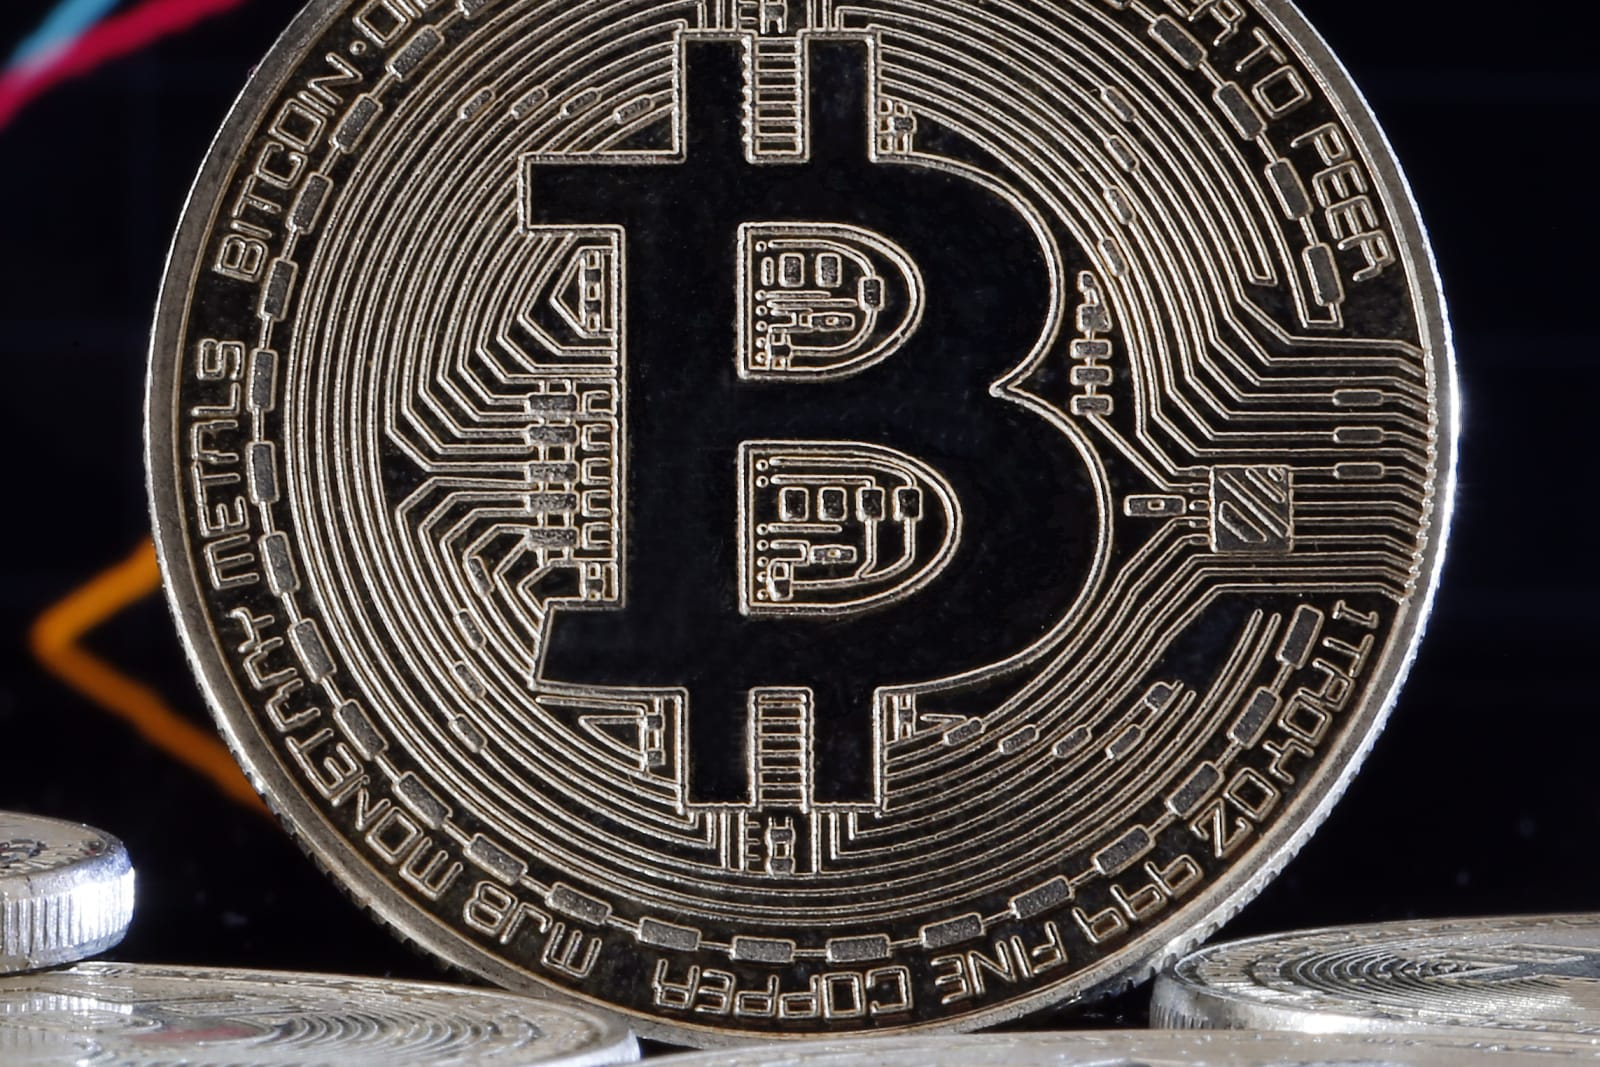 Ohio man charged for laundering $300 million through Bitcoin 'mixer'